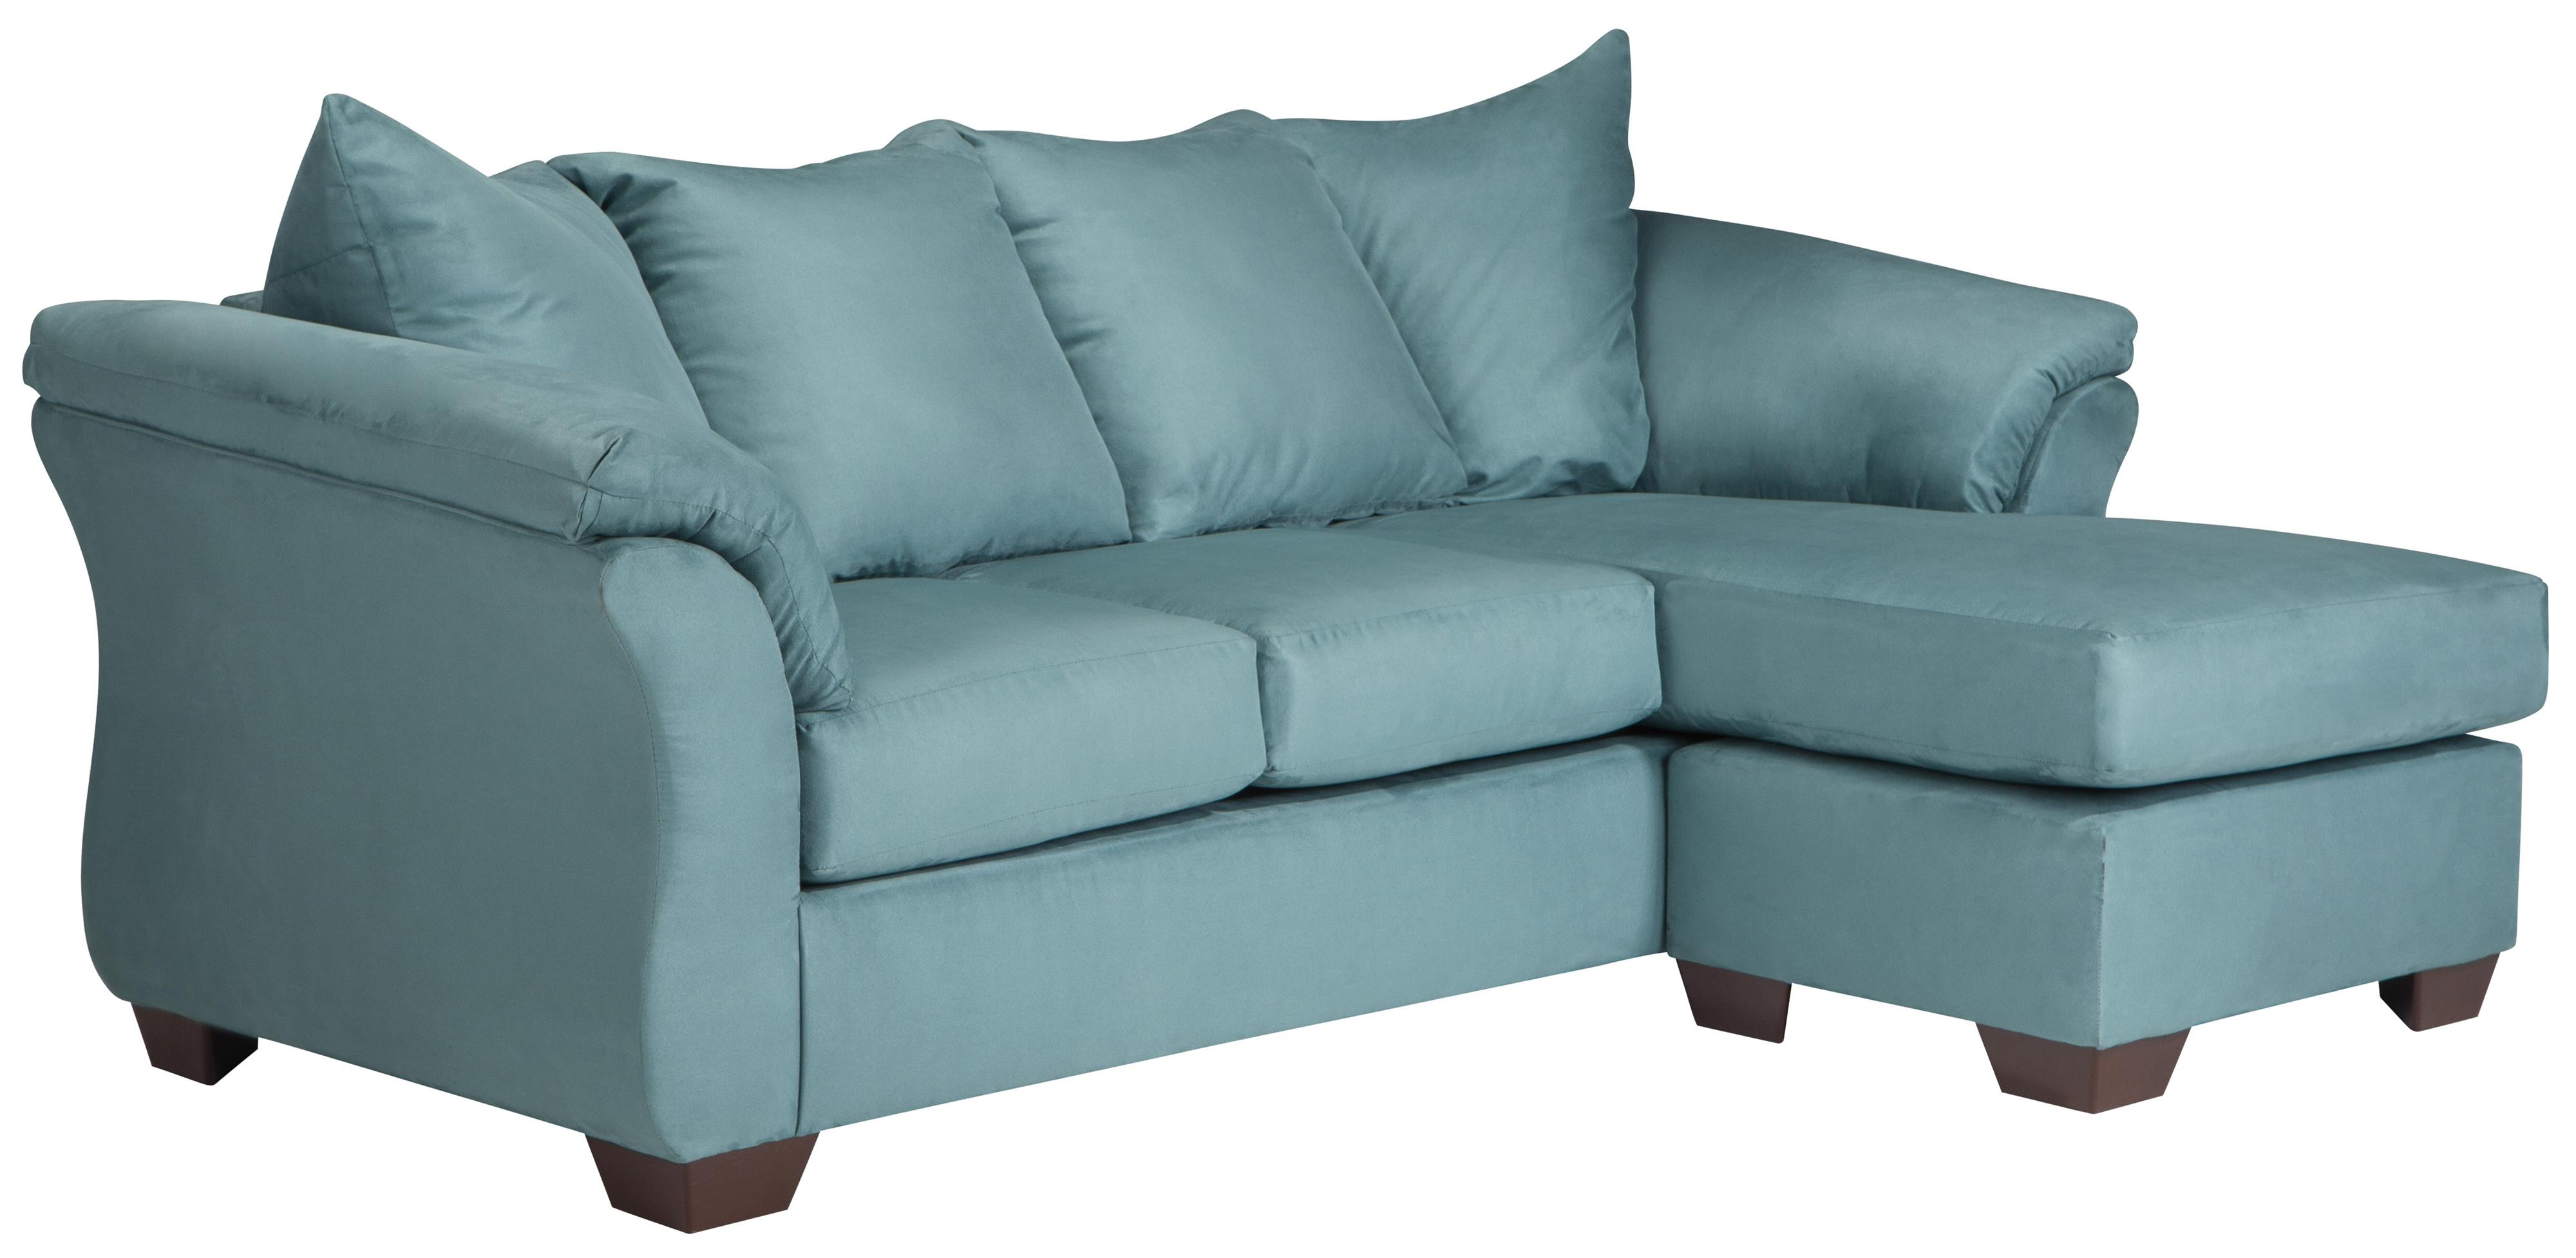 Ashley signature design darcy sky 7500618 contemporary for Ashley furniture chaise couch